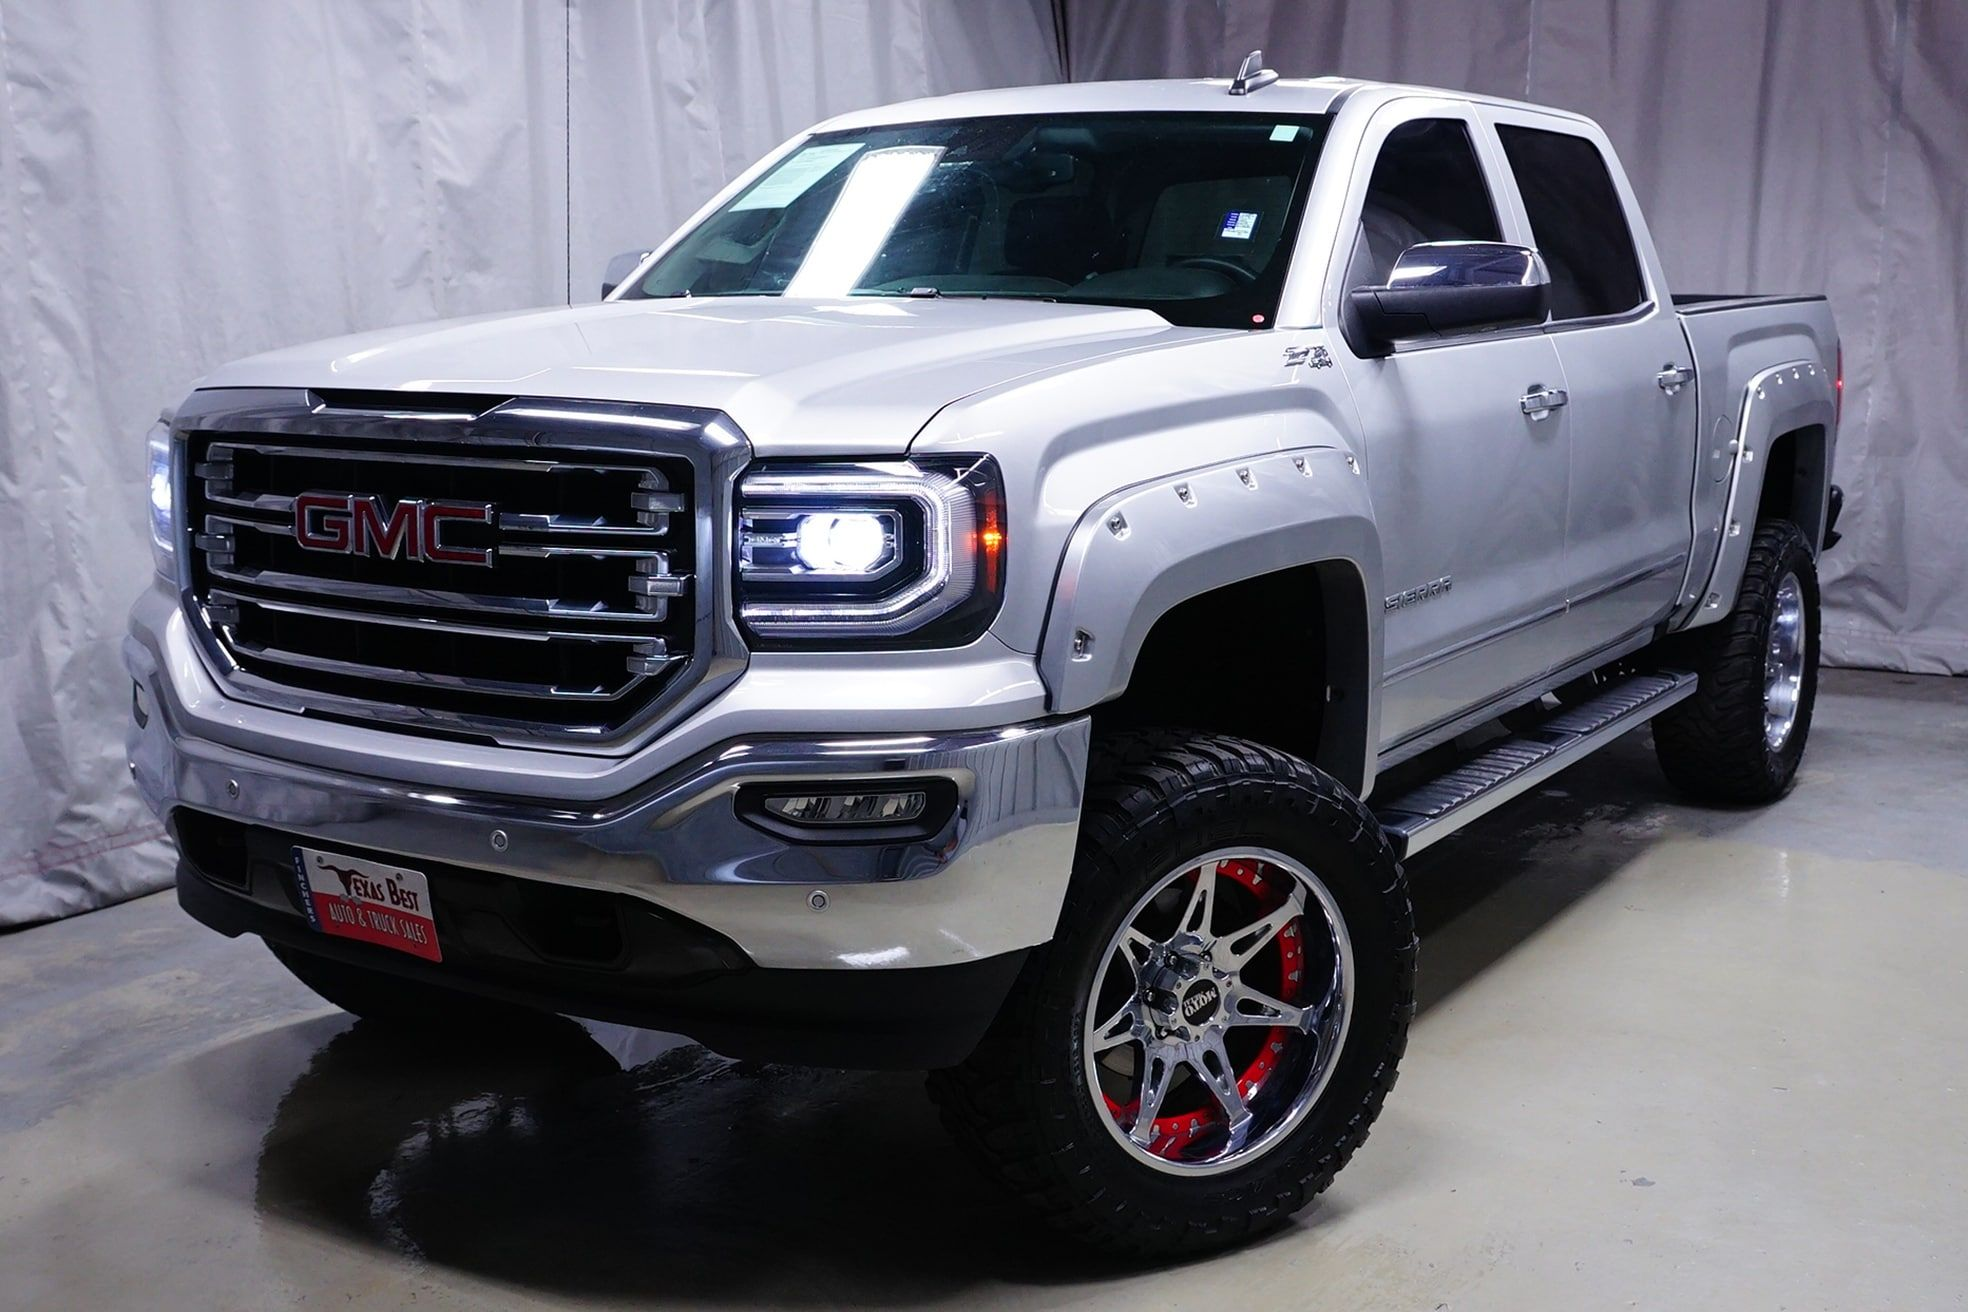 New Inventory Alert Custom Lifted 2017 Gmc Sierra 1500 Slt For Sale At Fincher S Texas Best Auto Truck Sales Gmc Sierra 1500 Gmc Sierra 2017 Gmc Sierra 1500